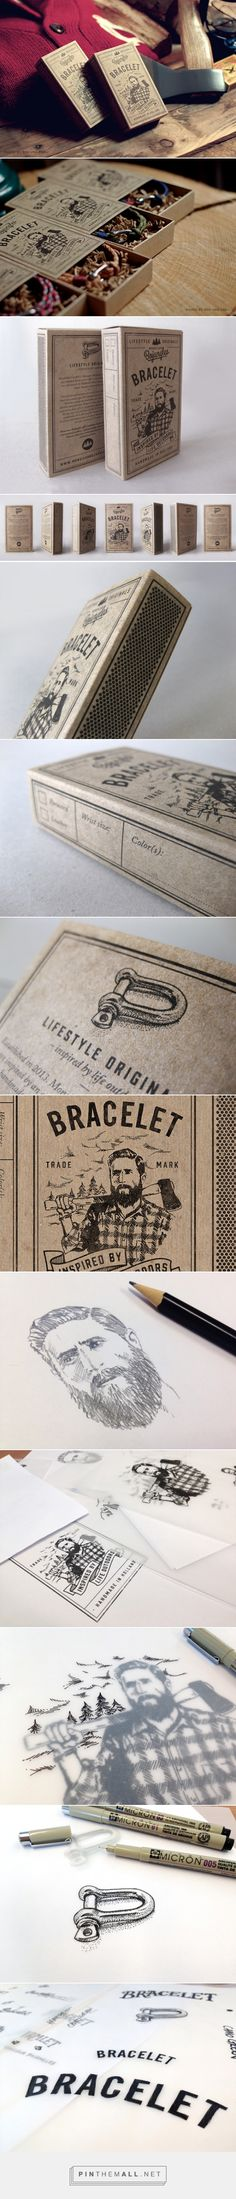 Monsieur Bojangles #bracelets in #matchbox designed by Peter Kortleve - http://www.packagingoftheworld.com/2015/07/monsieur-bojangles.html - created via http://pinthemall.net